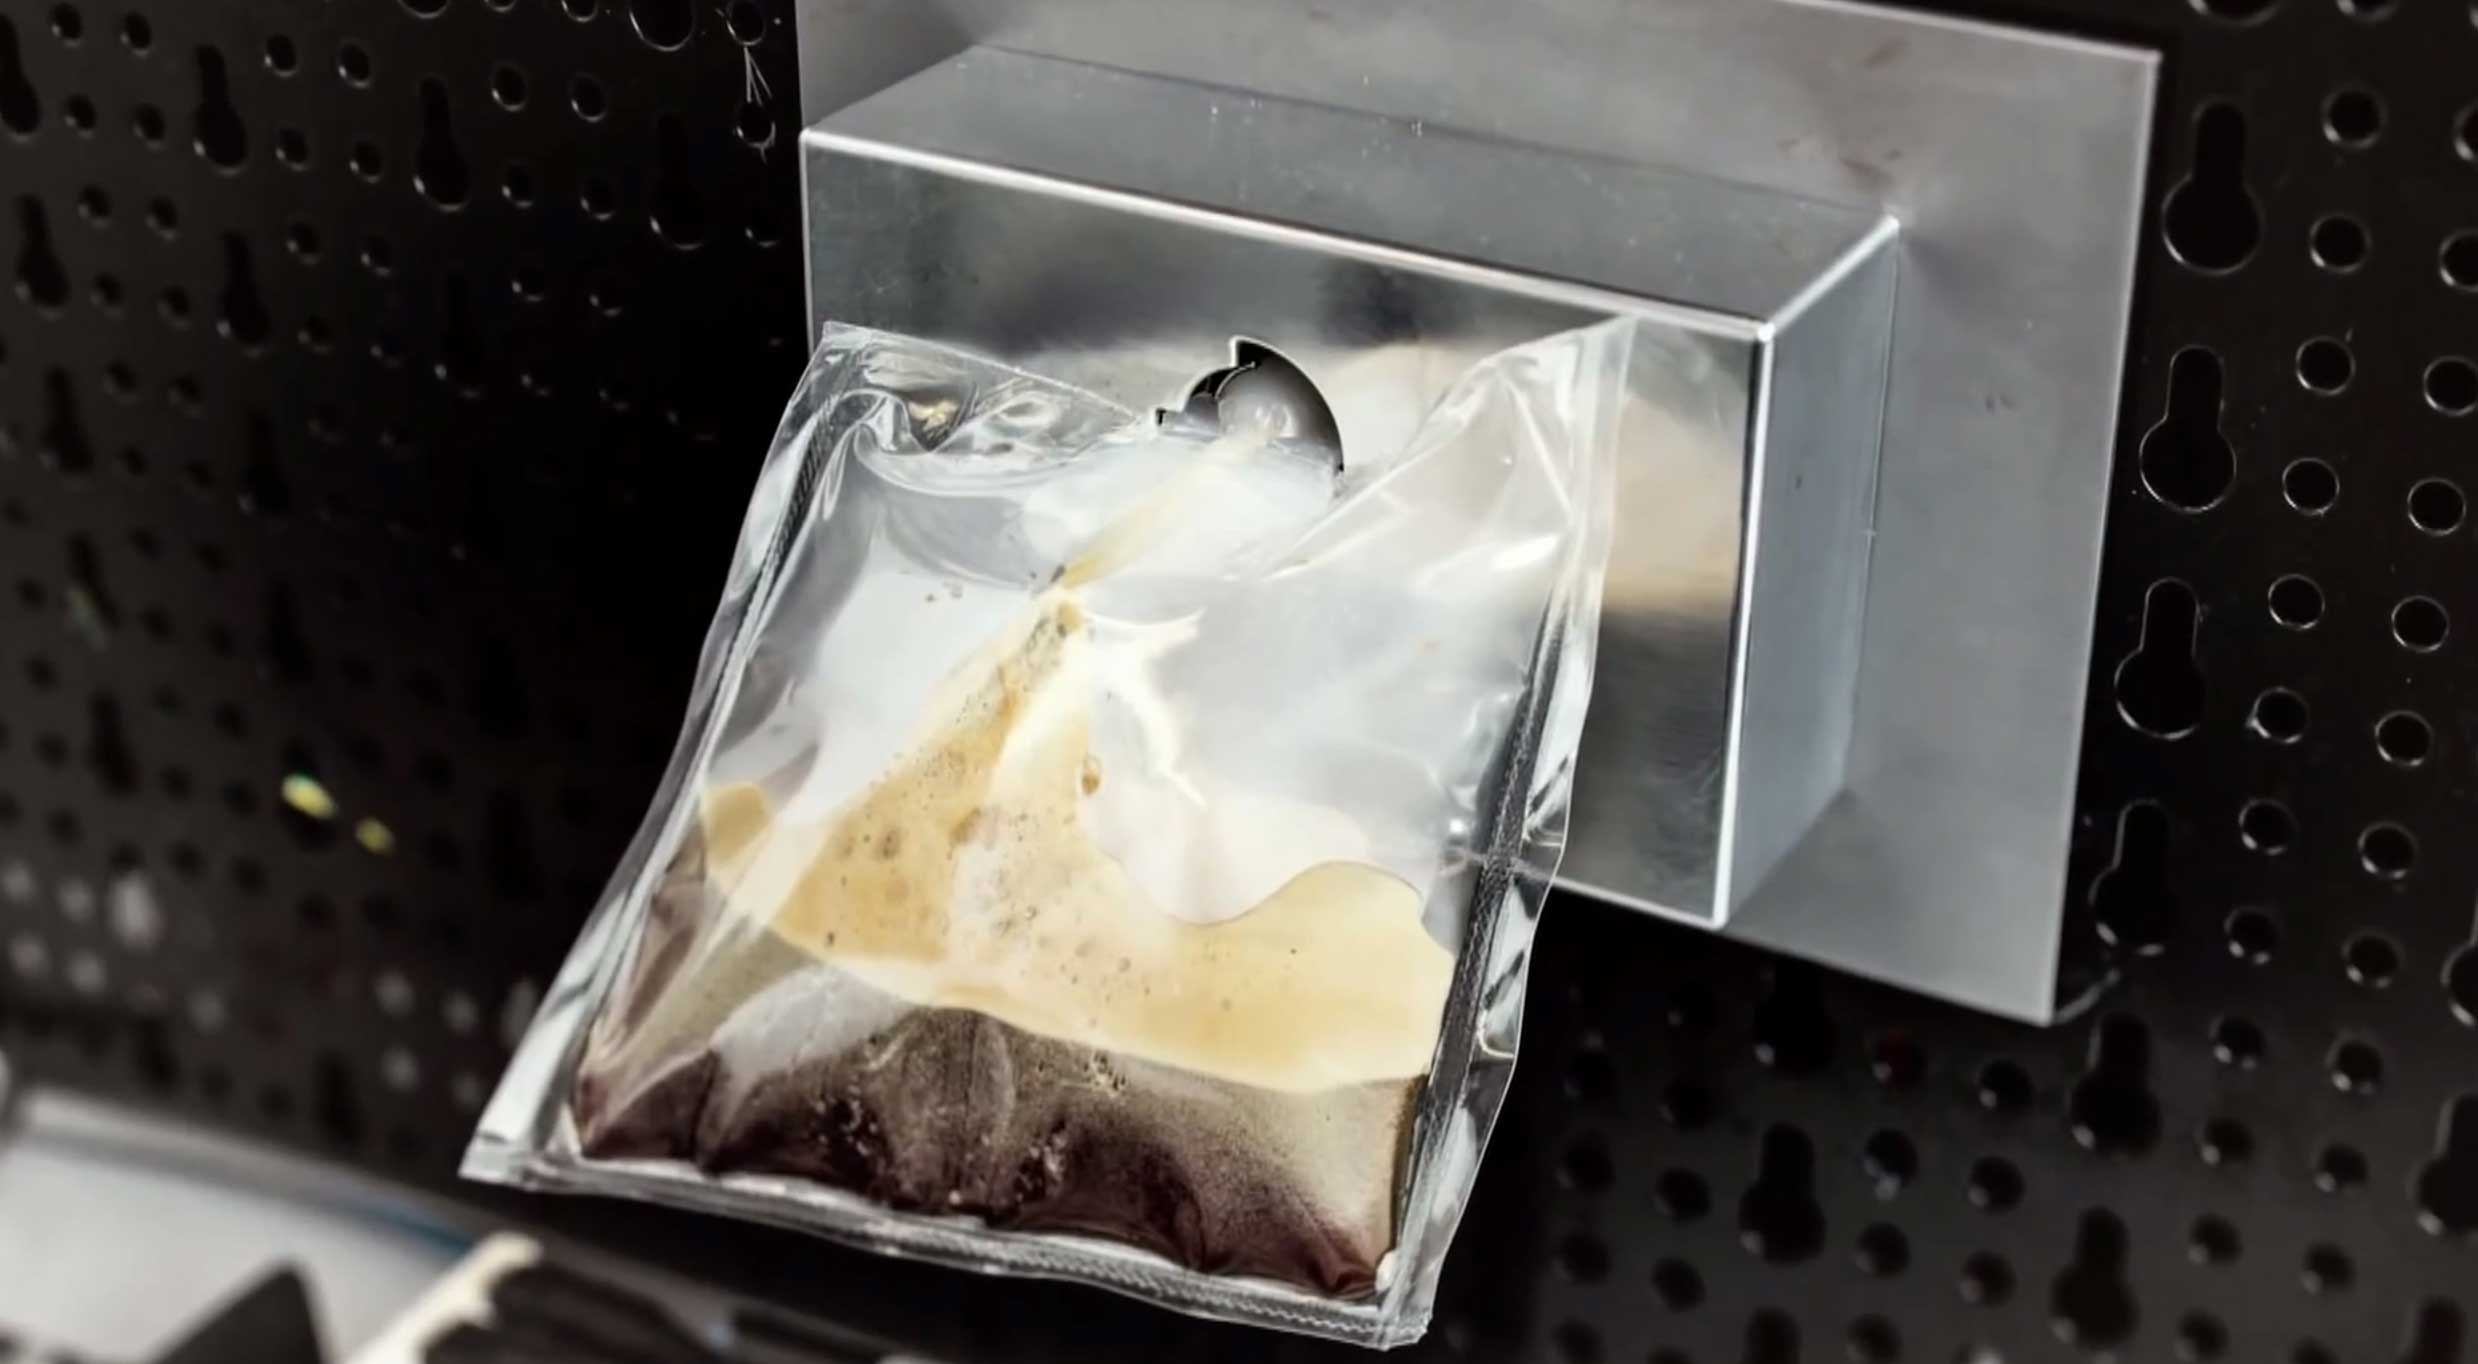 A prototype of Lavazza's and Argotec's  ISSpresso  machine. The final version of the coffee machine will be the first real Italian espresso machine on The International Space Station, and will coincide with a six-month mission by Italy's first Italian female astronaut, Samantha Cristoforetti.